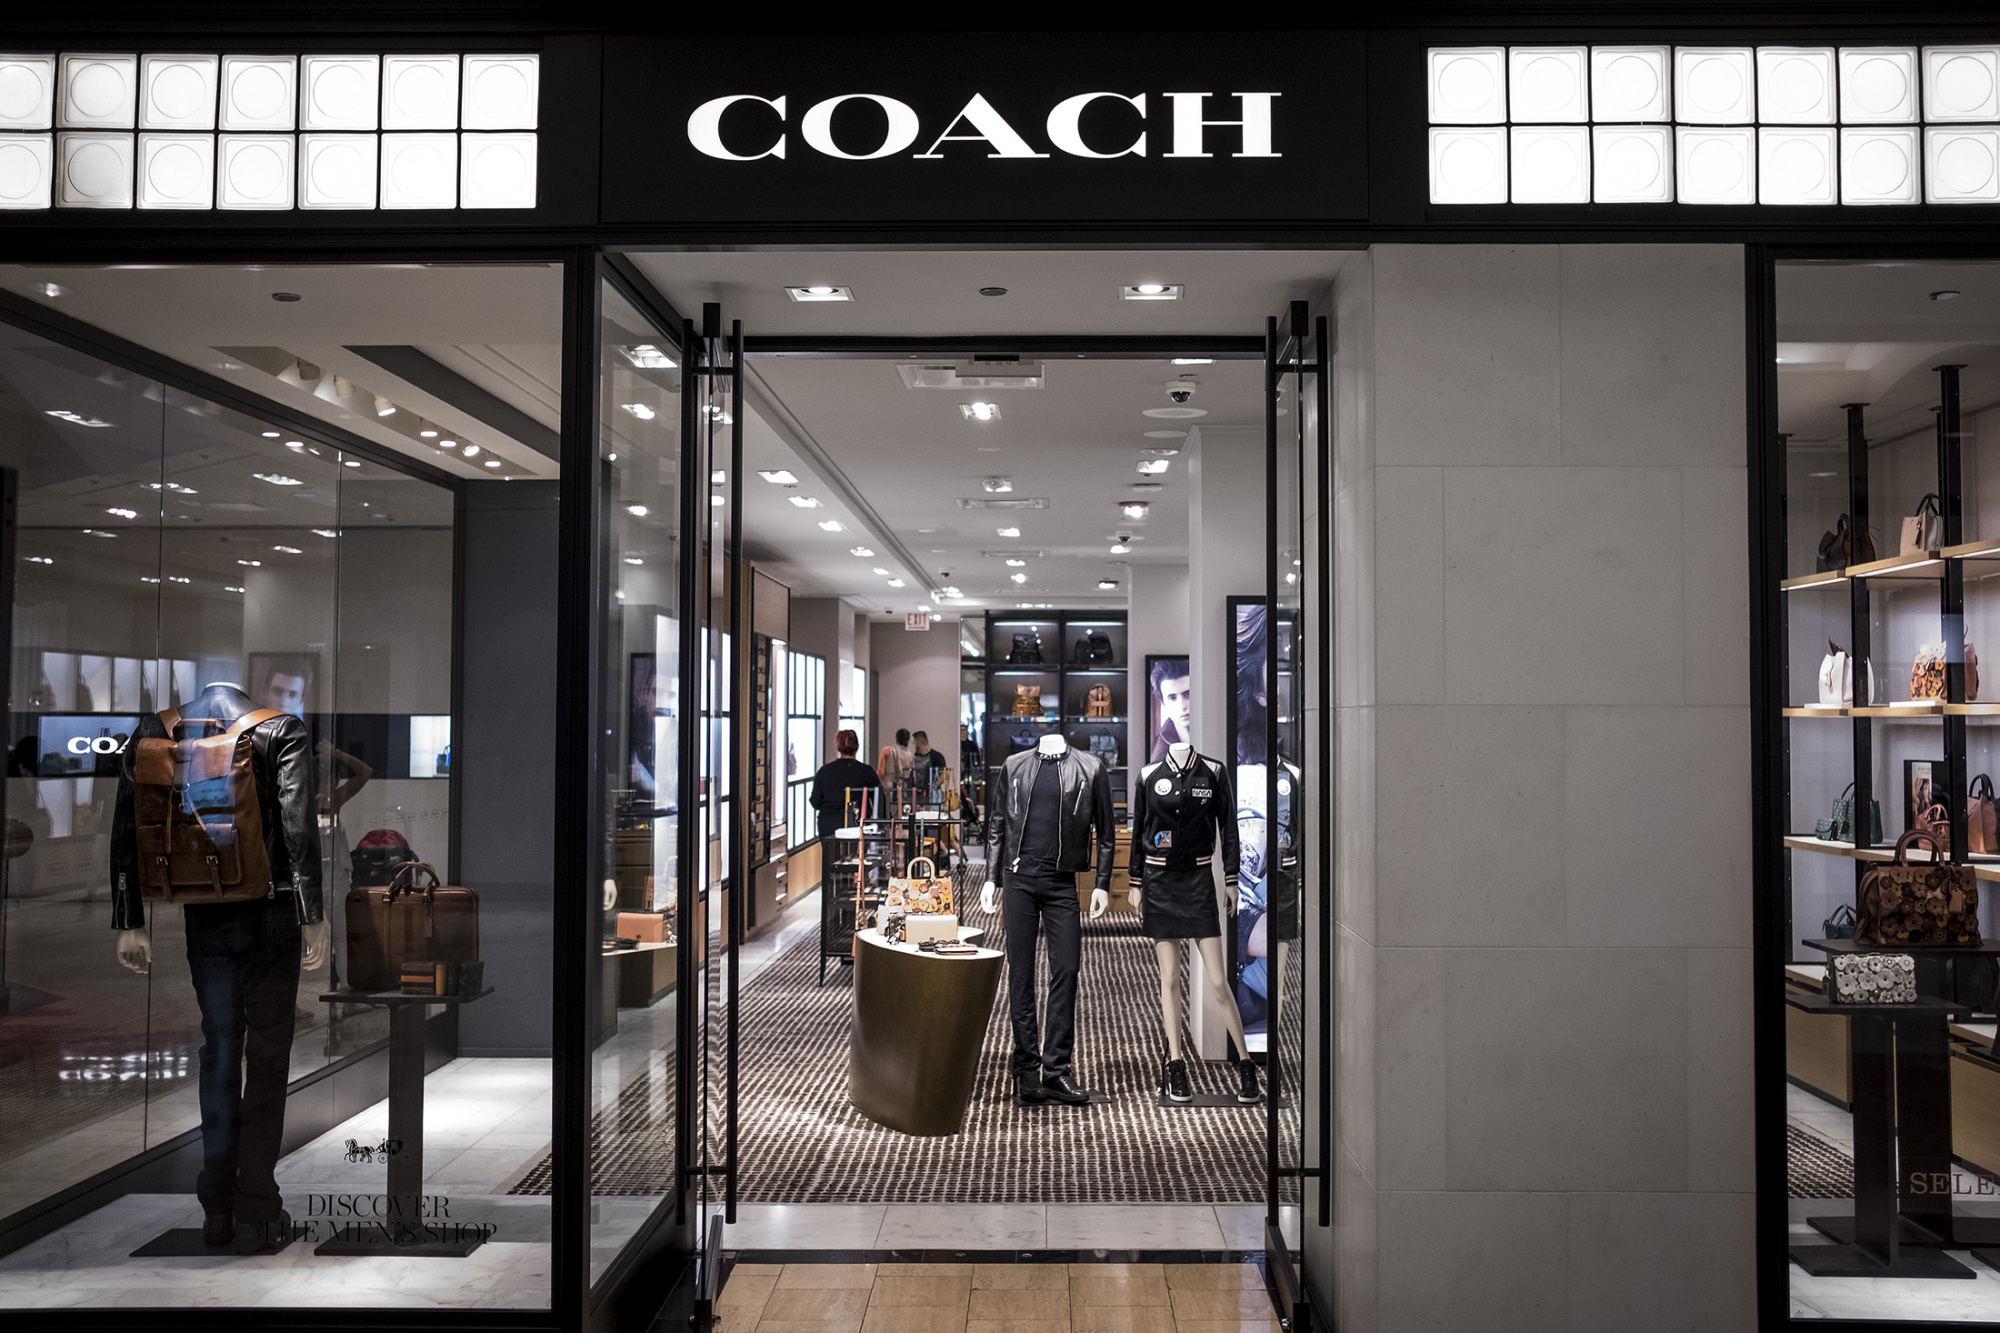 Coach Is Changing Its Name To Tapestry Bloomberg